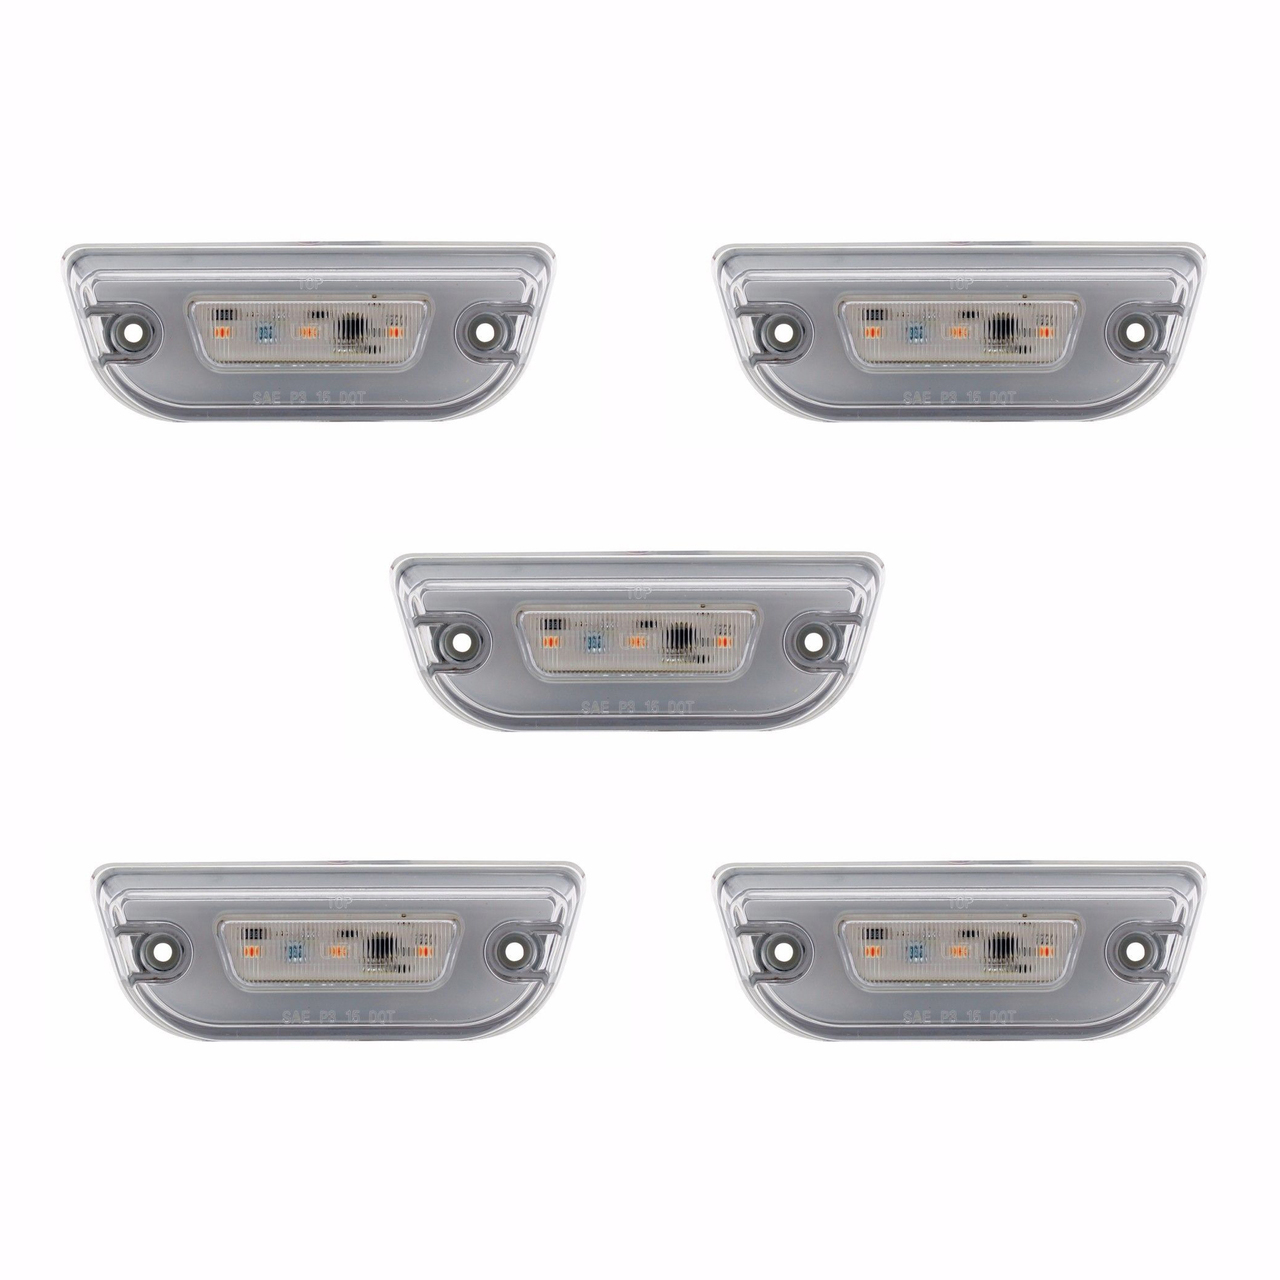 11 LED GLO CAB Lights for Peterbilt 579 & Kenworth T680, Clear Lens with Amber LED, Set of 5